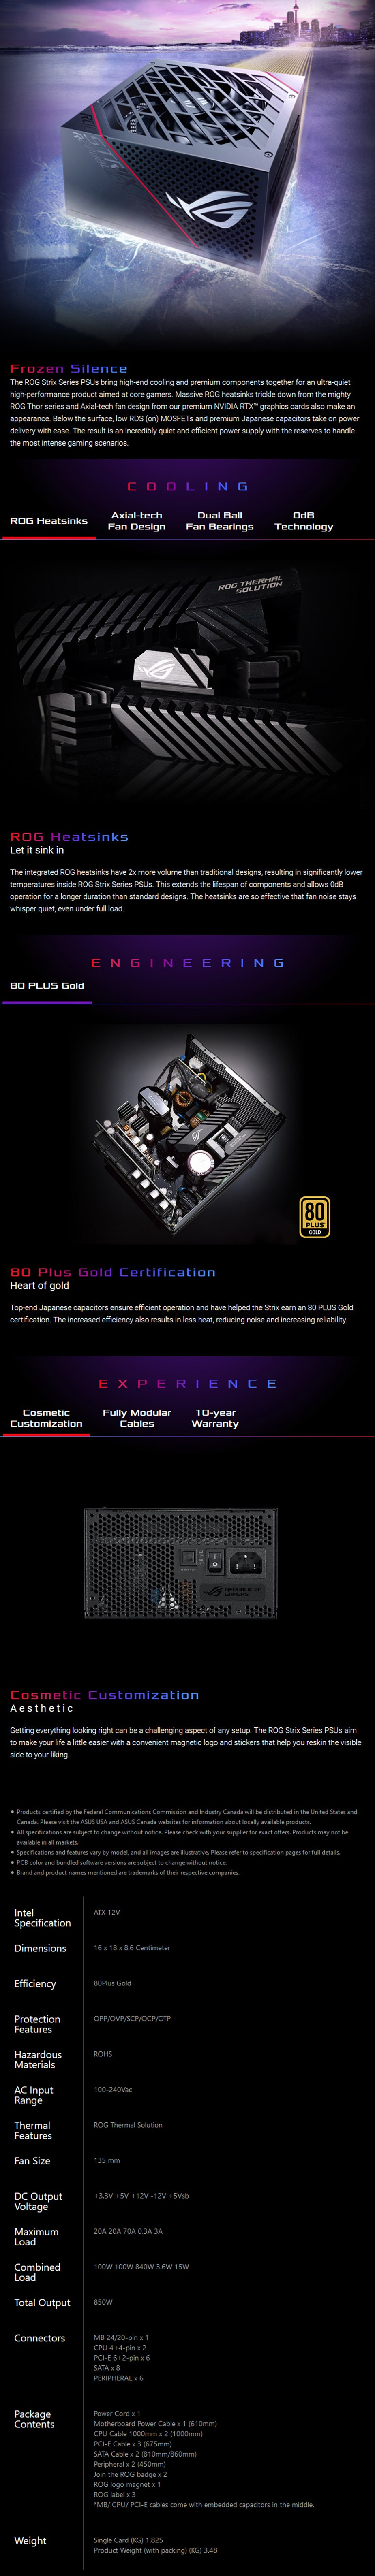 ASUS ROG Strix 850W 80+ Gold Fully Modular Power Supply - Overview 1